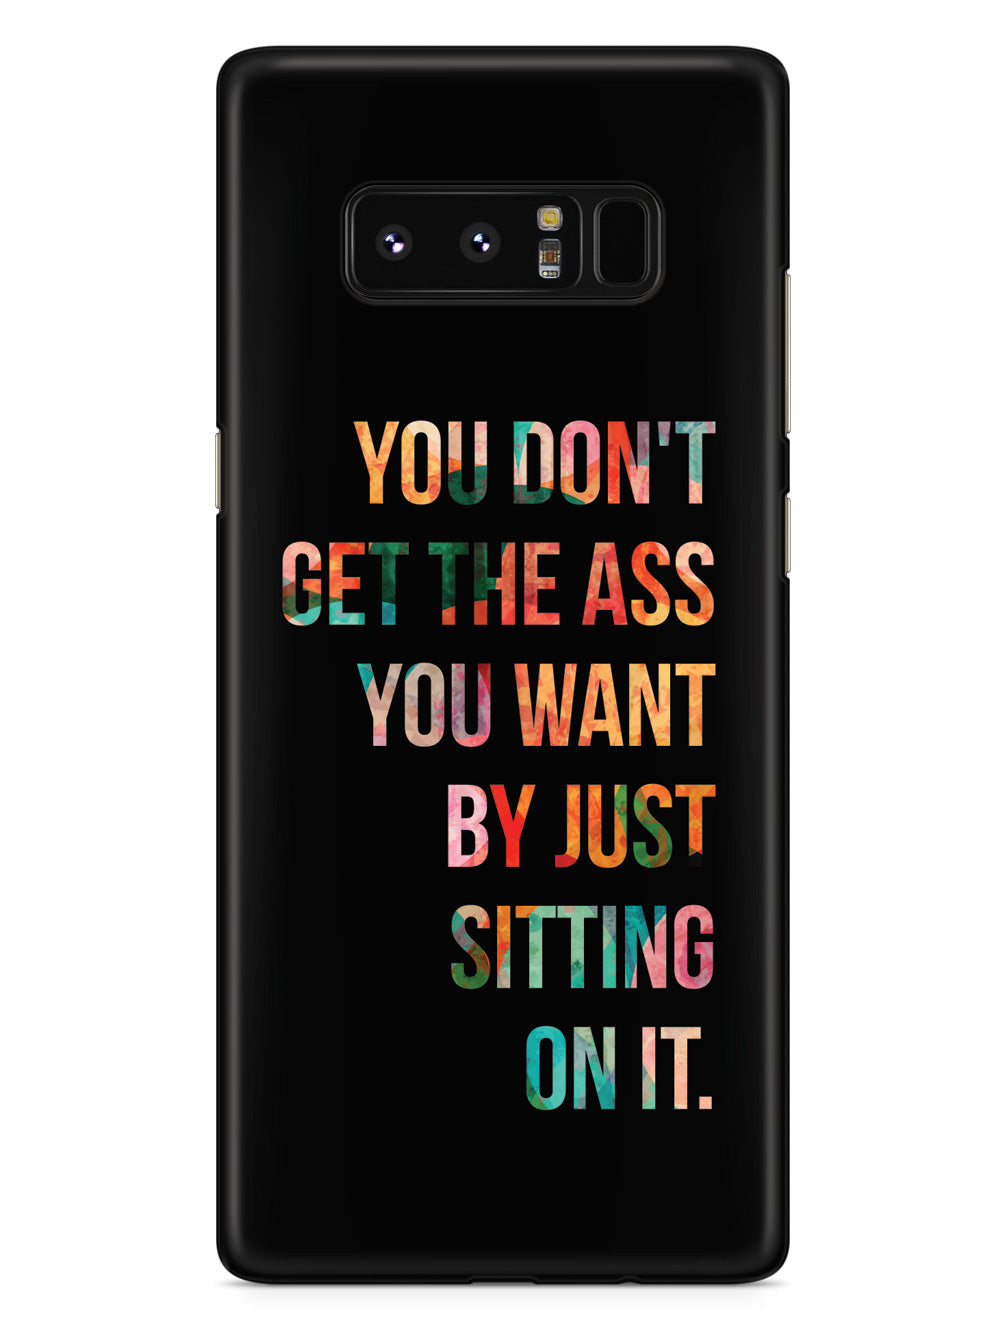 The Ass You Want - Fitness Case